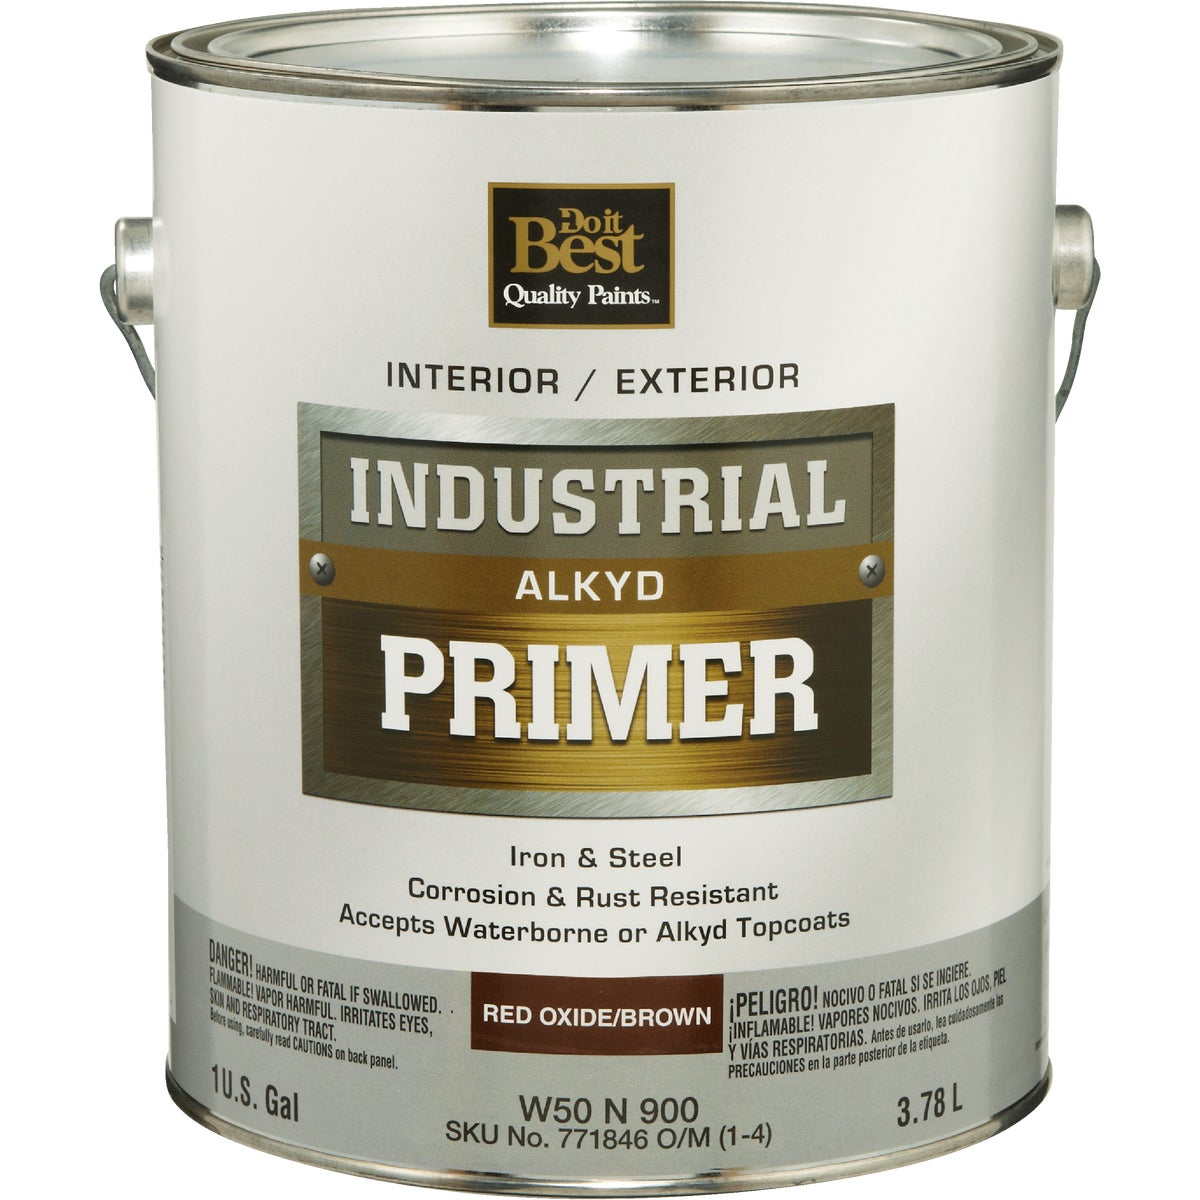 INT/EXT BRN ALKYD PRIMER